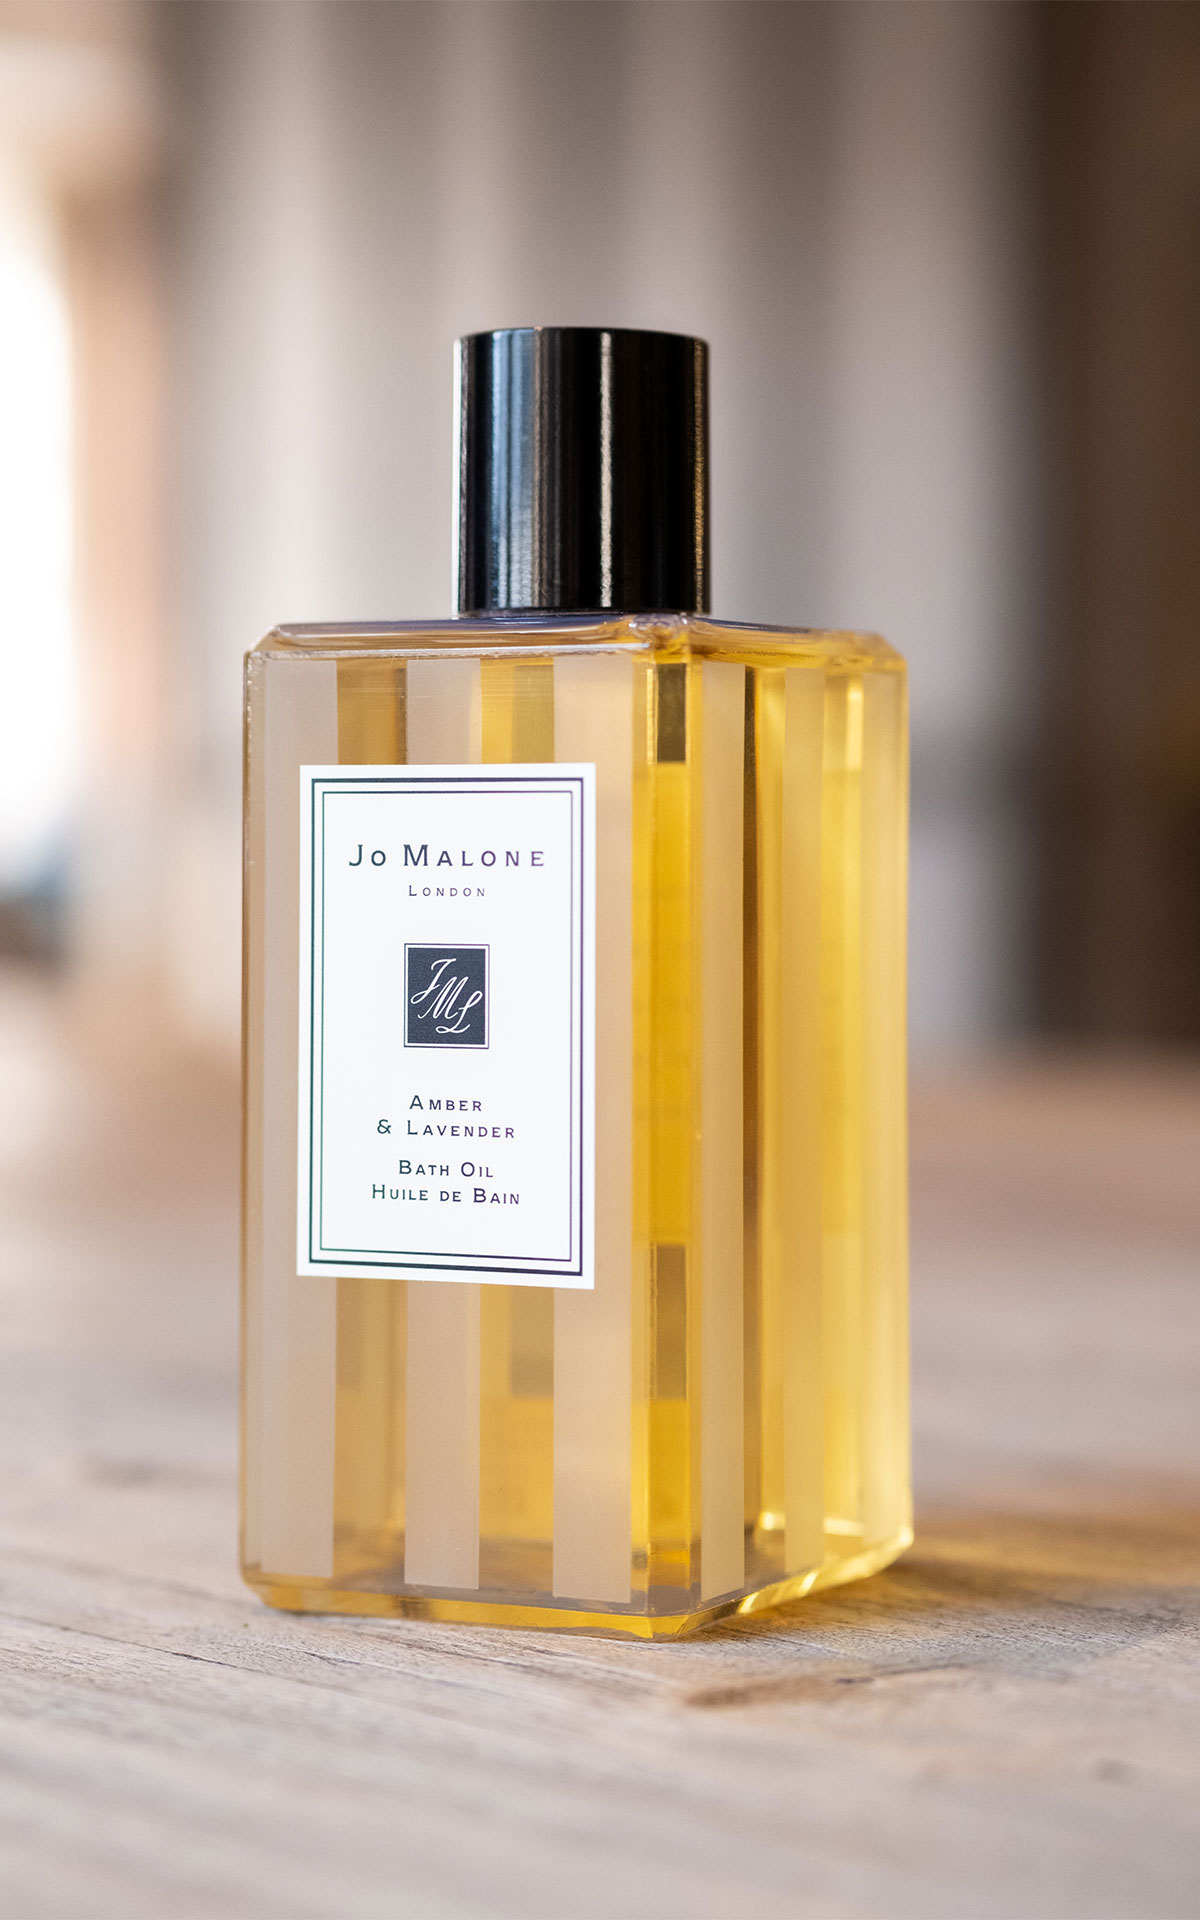 Jo Malone London Amber and lavender bath oil from Bicester Village